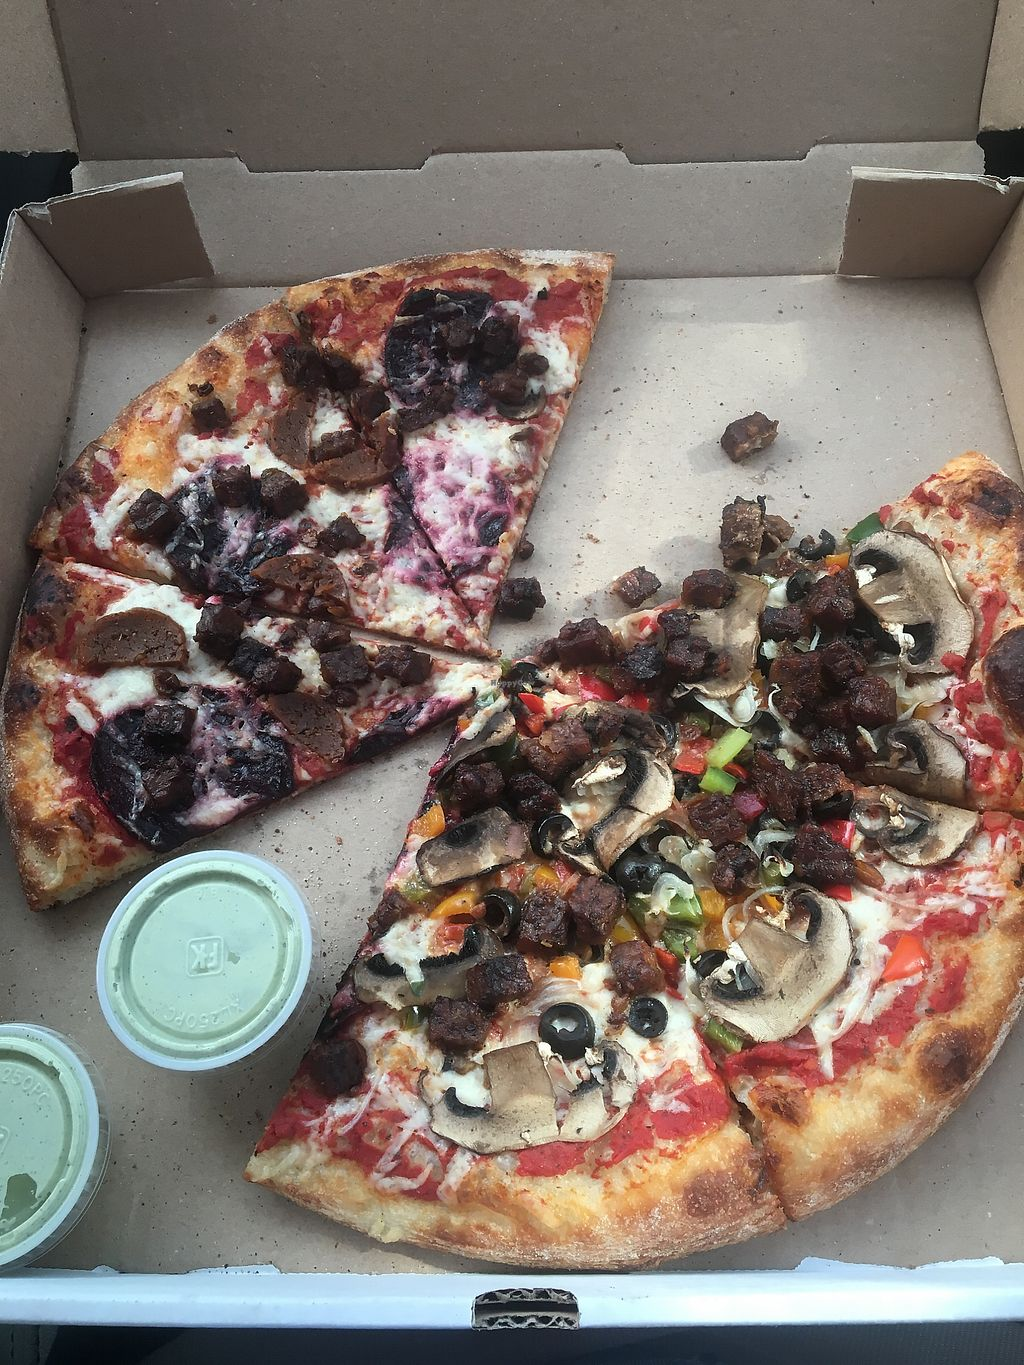 """Photo of Li'l Nonna's - Food Truck  by <a href=""""/members/profile/MichelaGiordano"""">MichelaGiordano</a> <br/>half meats half supreme with vegan ranch on the side  <br/> July 27, 2017  - <a href='/contact/abuse/image/85830/285517'>Report</a>"""